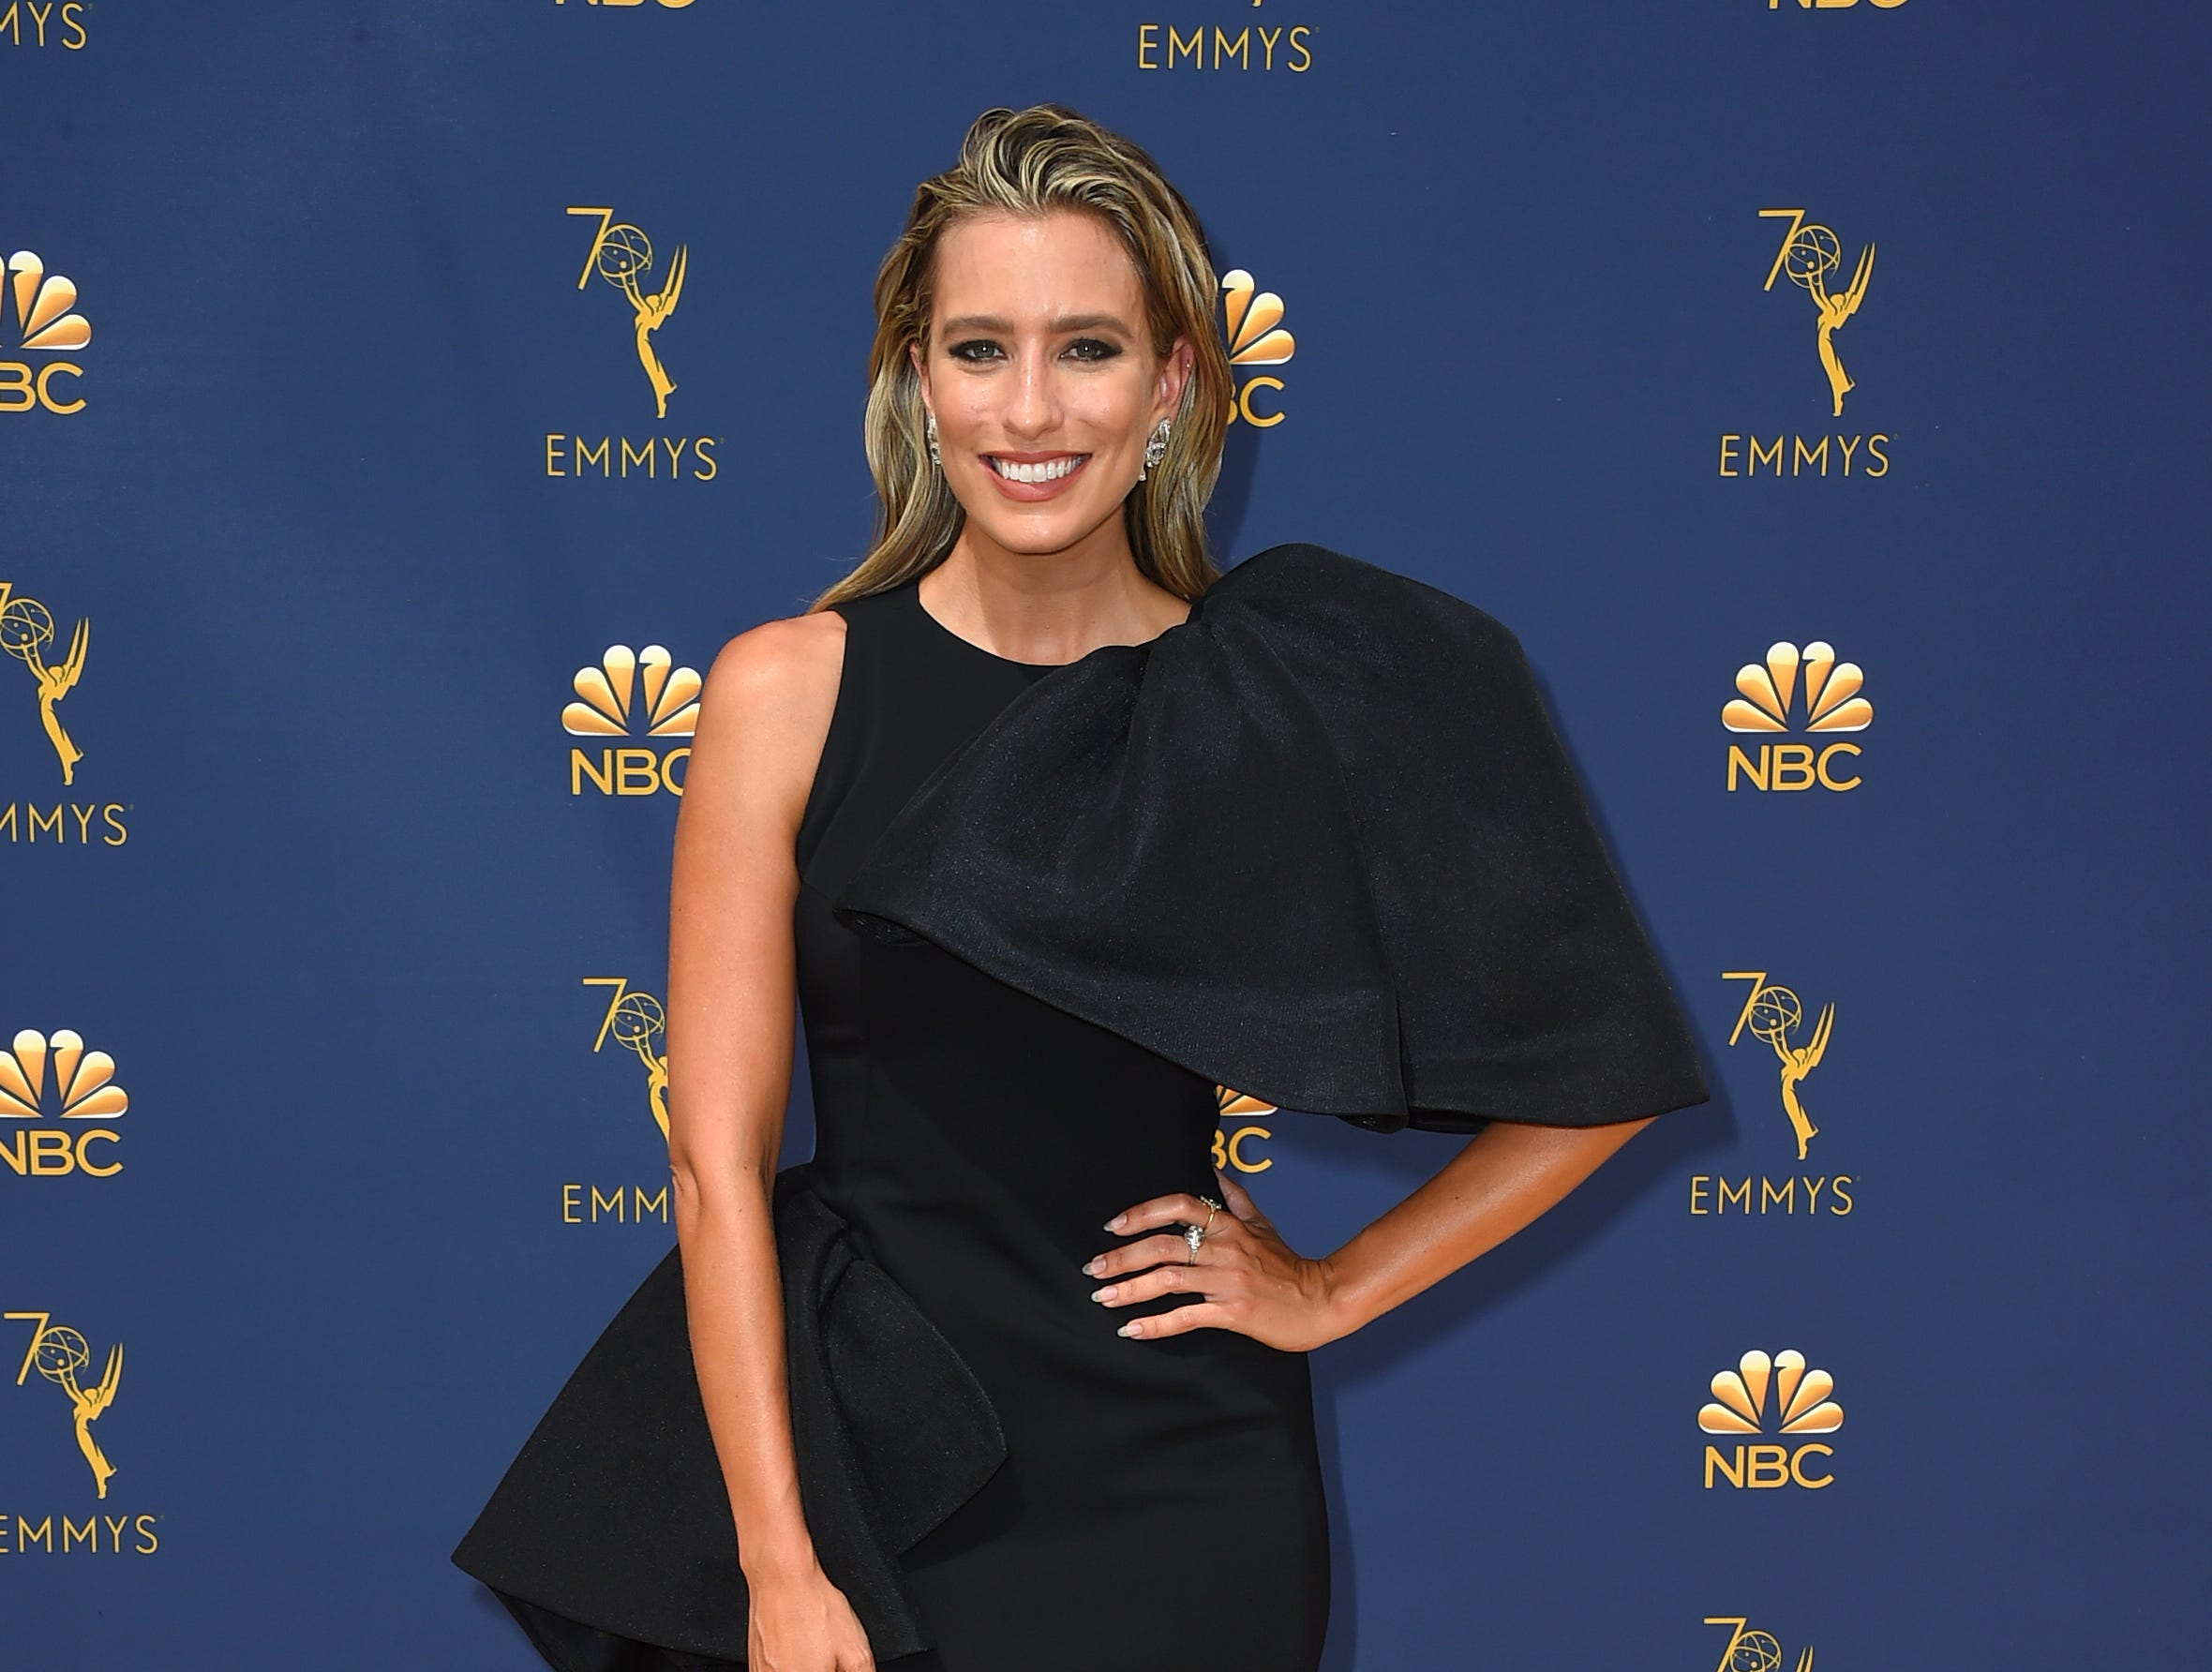 Renee Bargh arrives at the 70th Primetime Emmy Awards on Monday, Sept. 17, 2018, at the Microsoft Theater in Los Angeles.